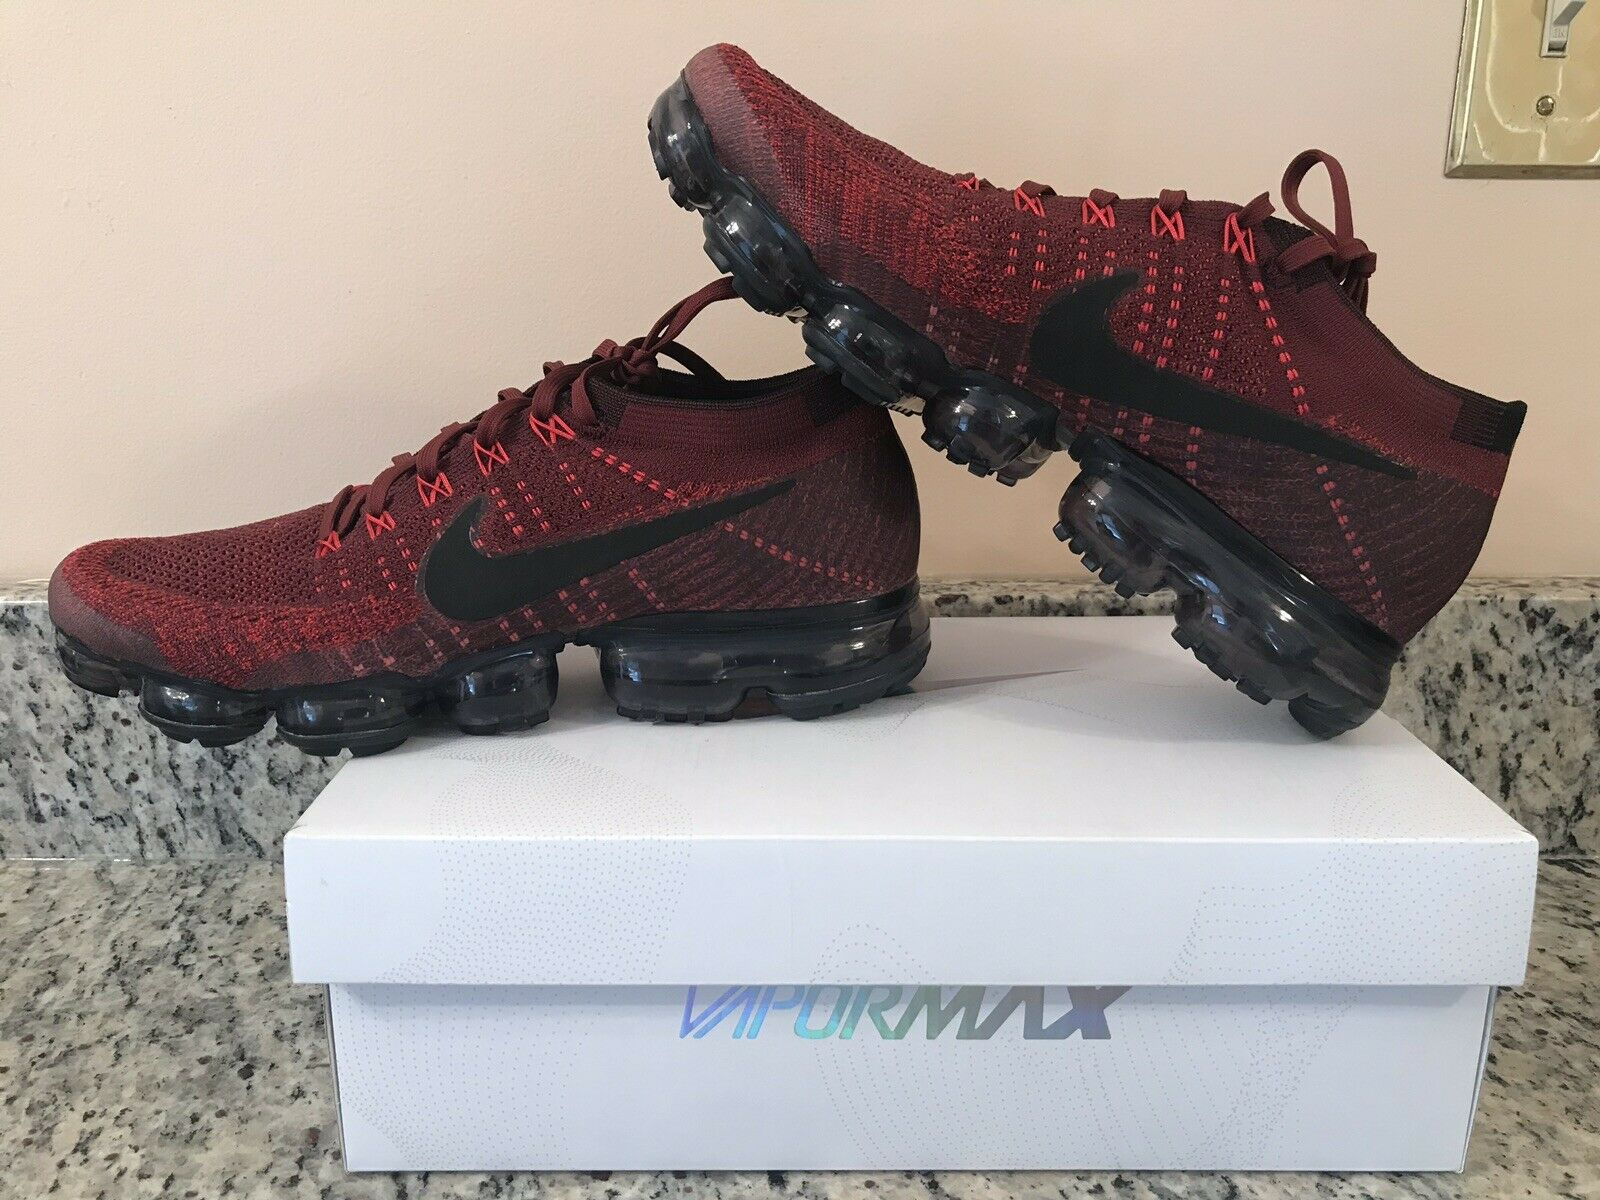 Nike Air Flyknit Vapormax 849558 601 Dark Team Red Black Size 10 RARE